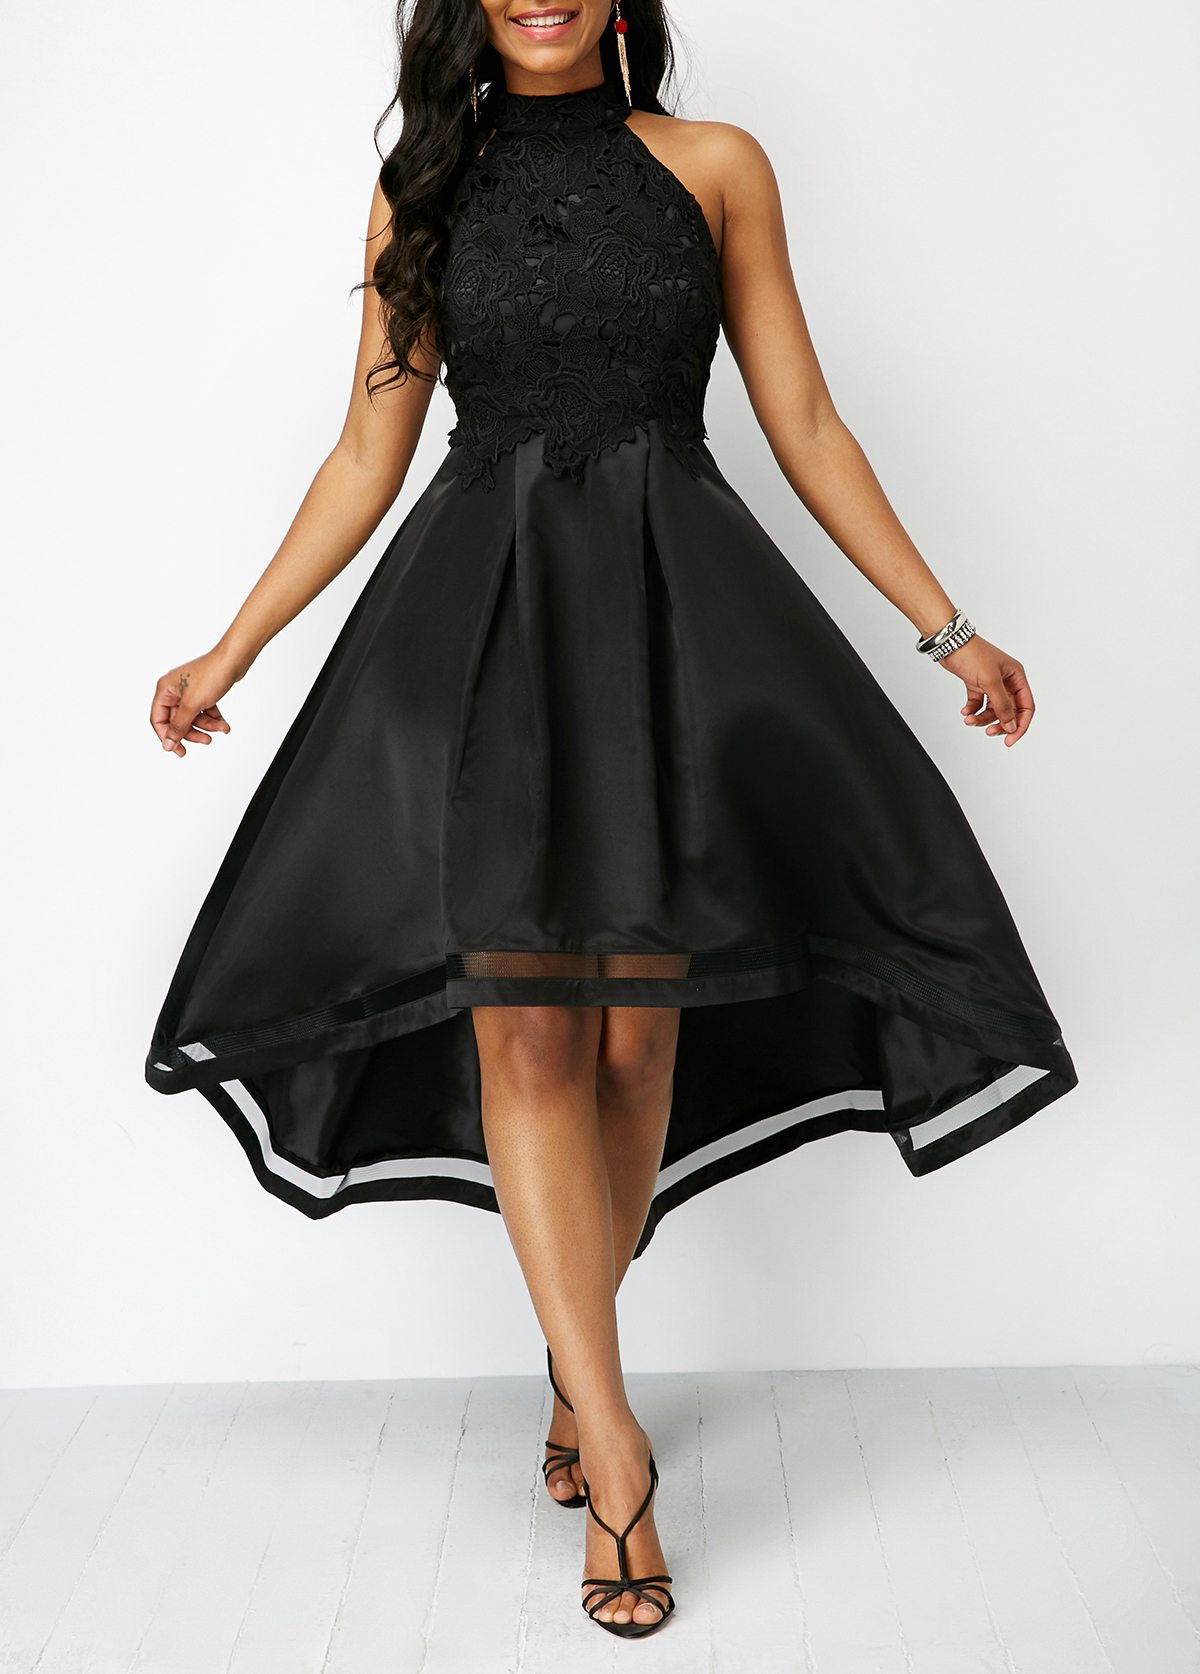 Lace Panel Sleeveless Black High Low Dress